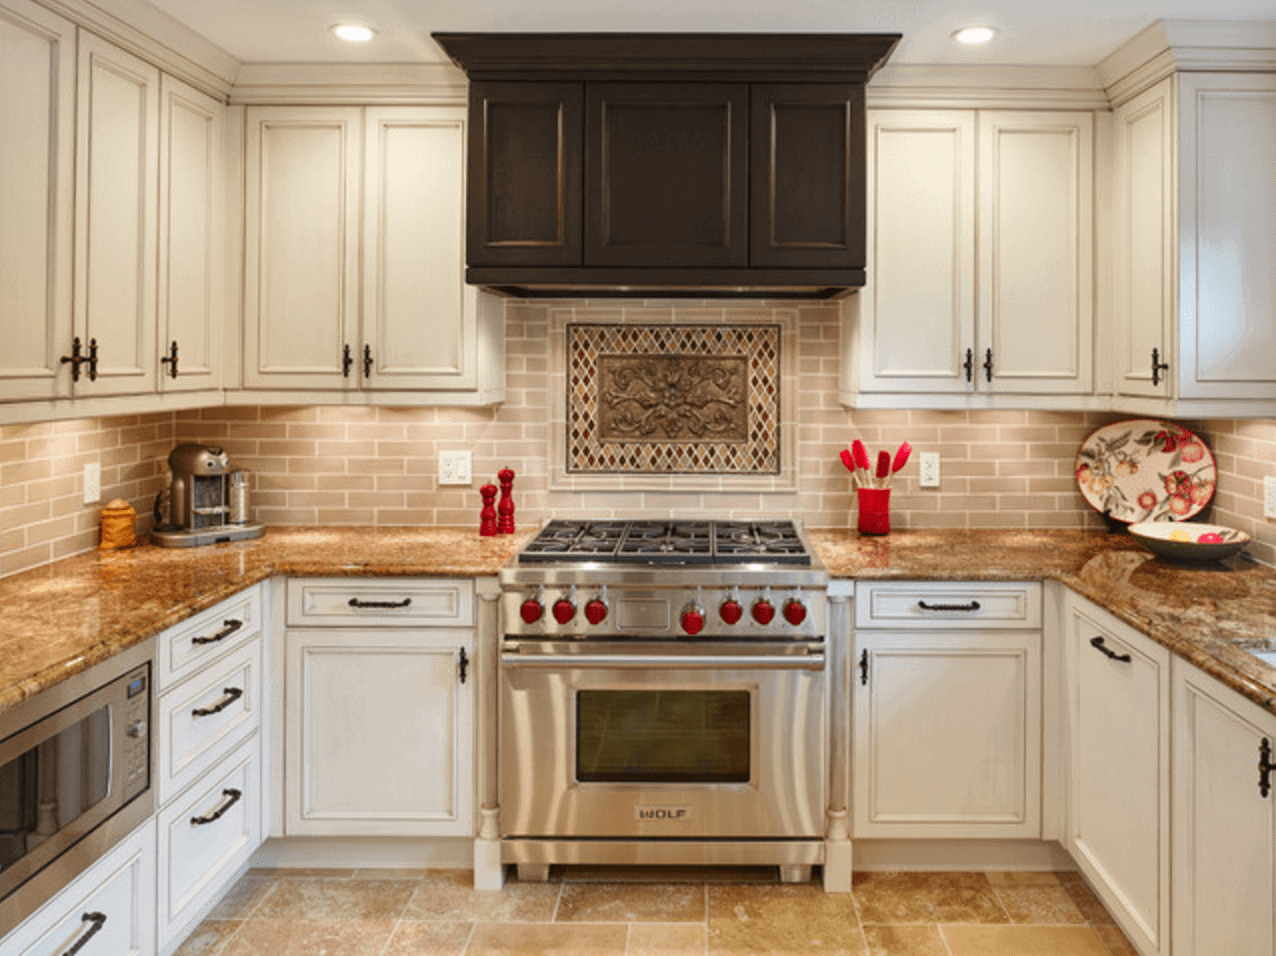 how much for kitchen remodel yellow towels calculating the cost of a renovation kerr